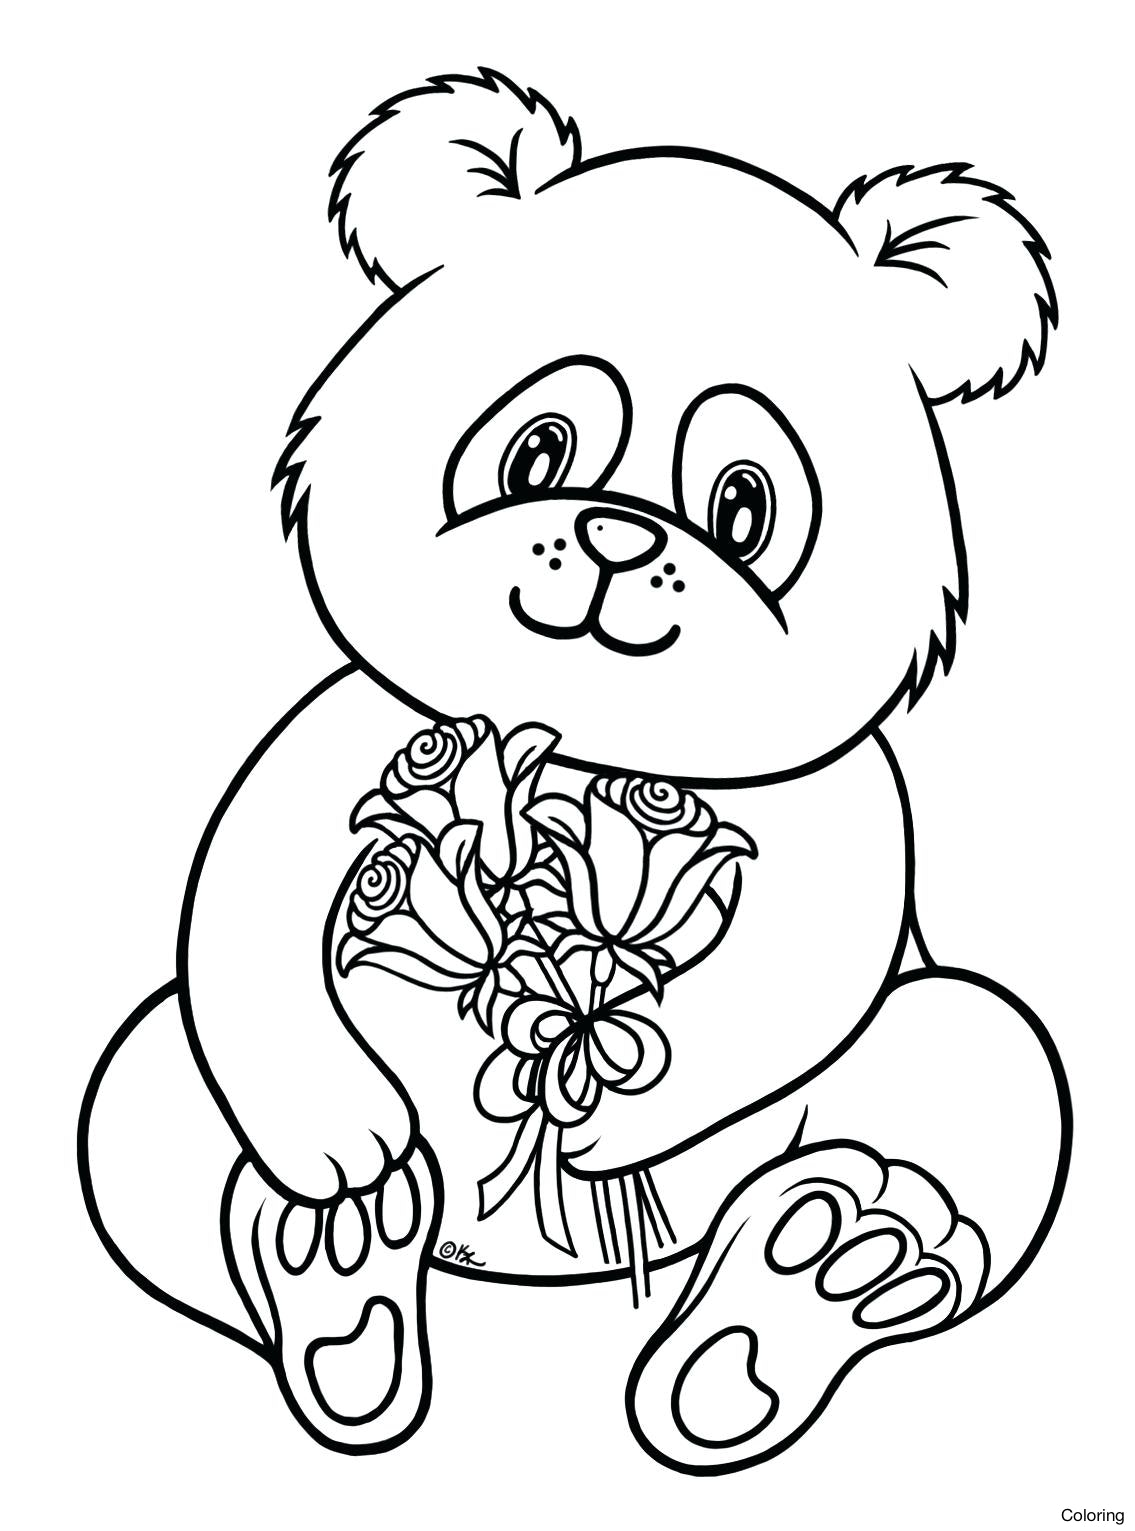 1135x1531 Cute Panda Coloring Pages Printable Cartoon Baby Diaiz